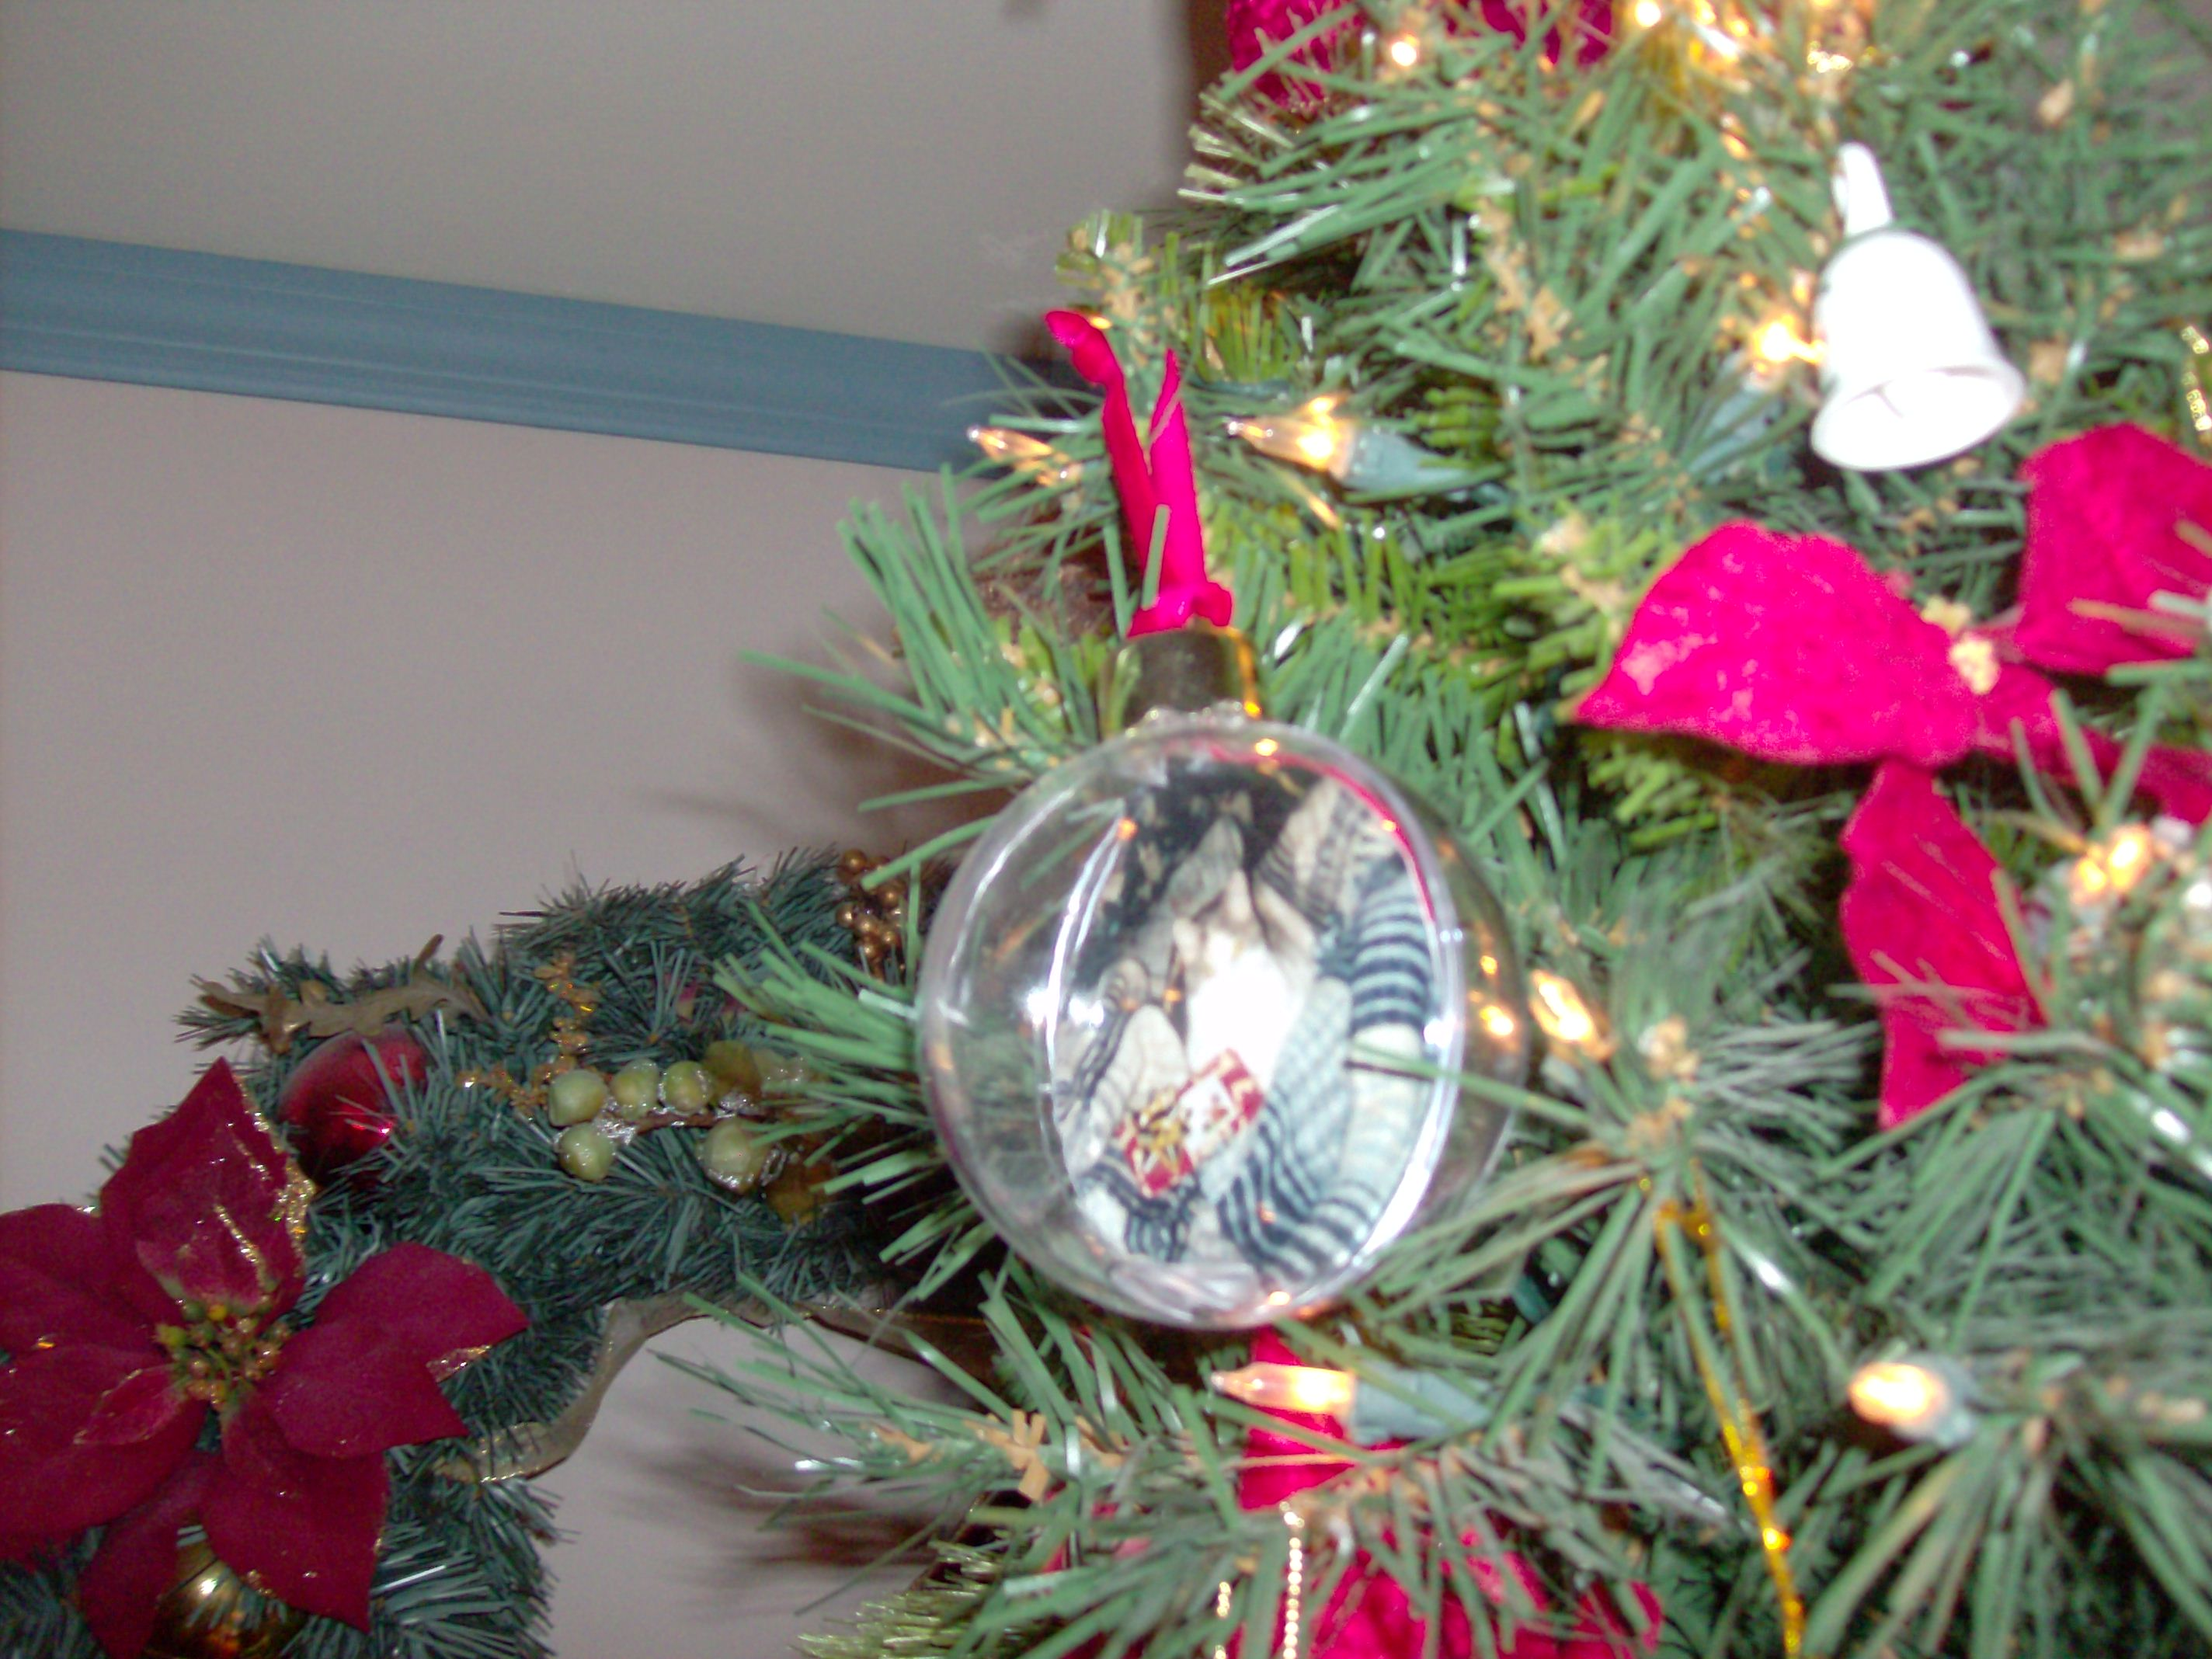 Grumpy christmas ornament - Mom Got A Gift That Wasn T Cat Related It Is A Talking Sheldon Ornament